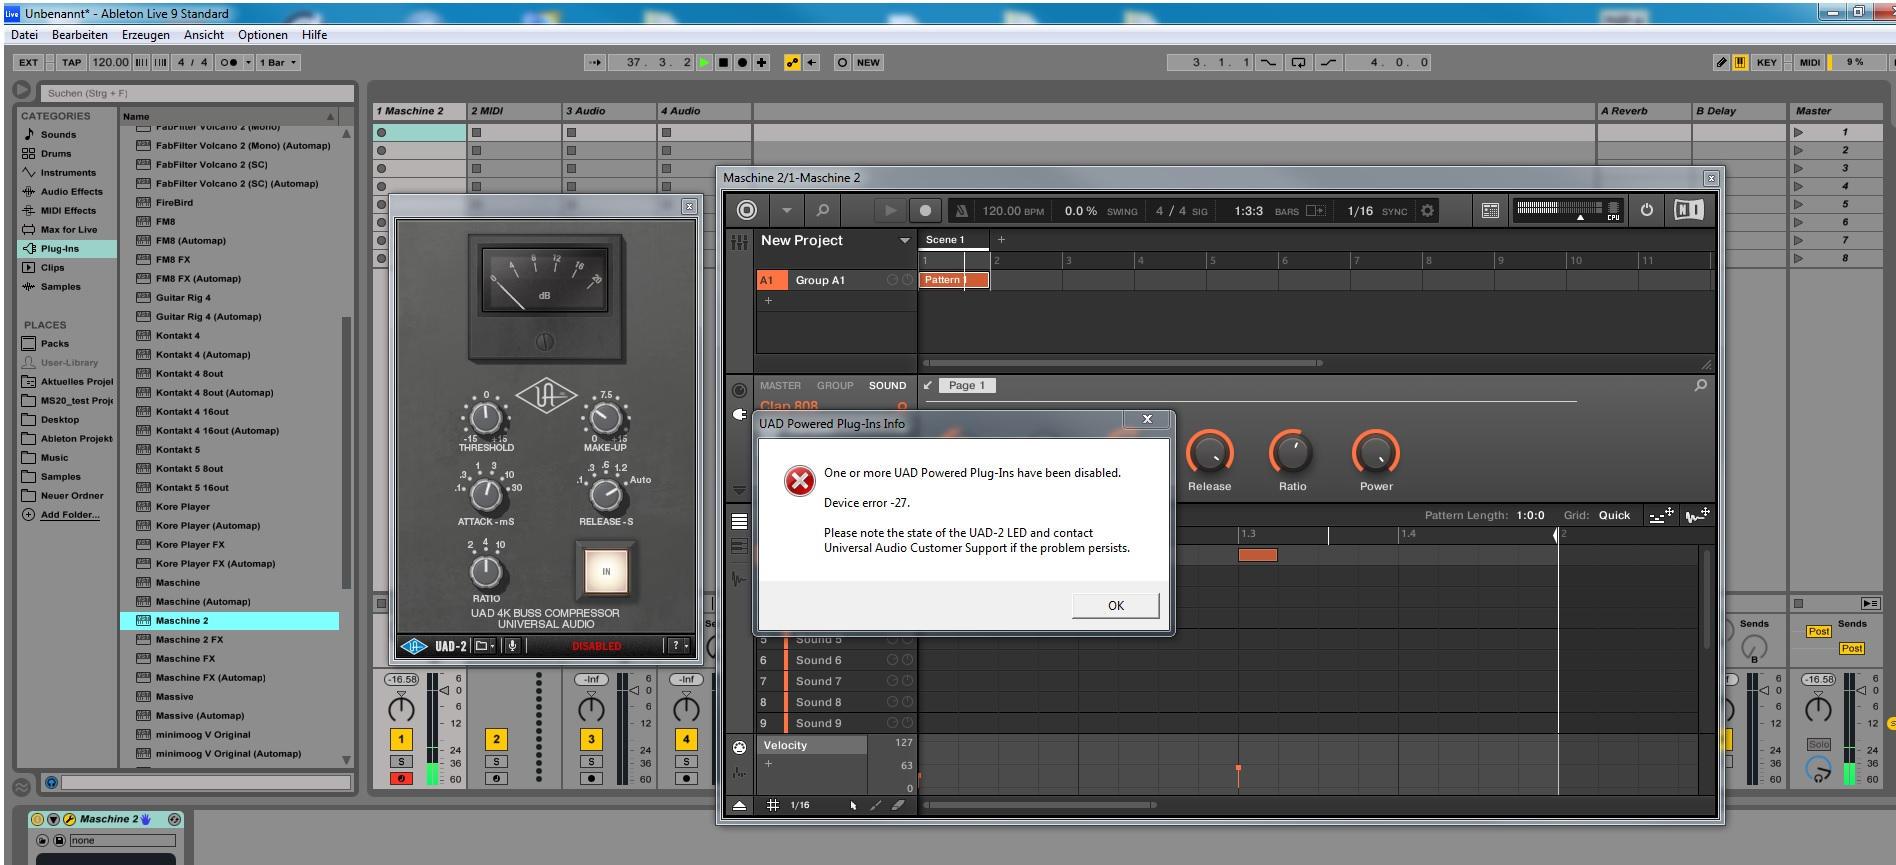 UAD-2 plugins crash when using them in Maschine 2 0 and